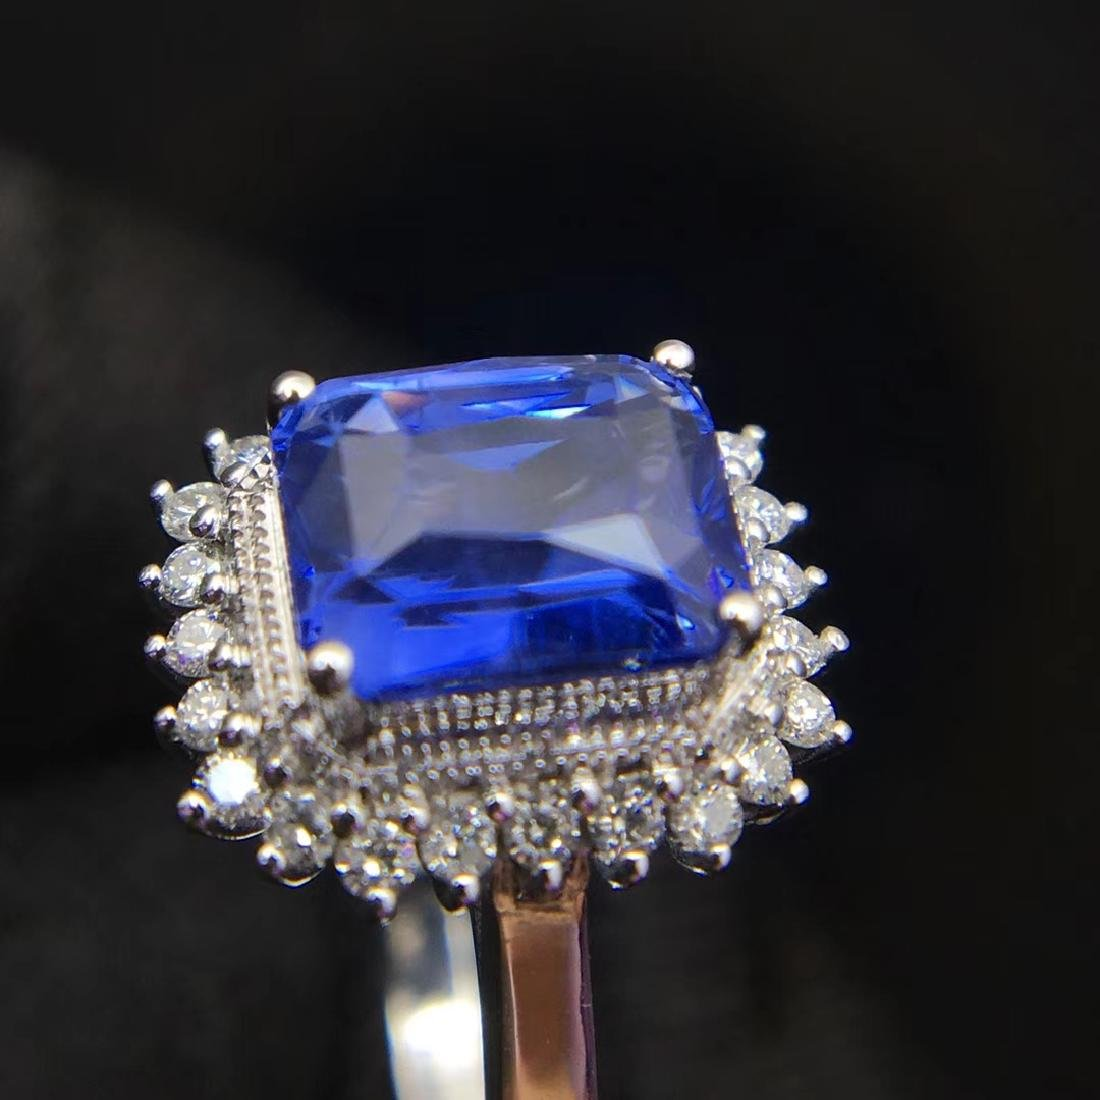 2.52ct Sapphire Ring in 18kt White Gold - 4